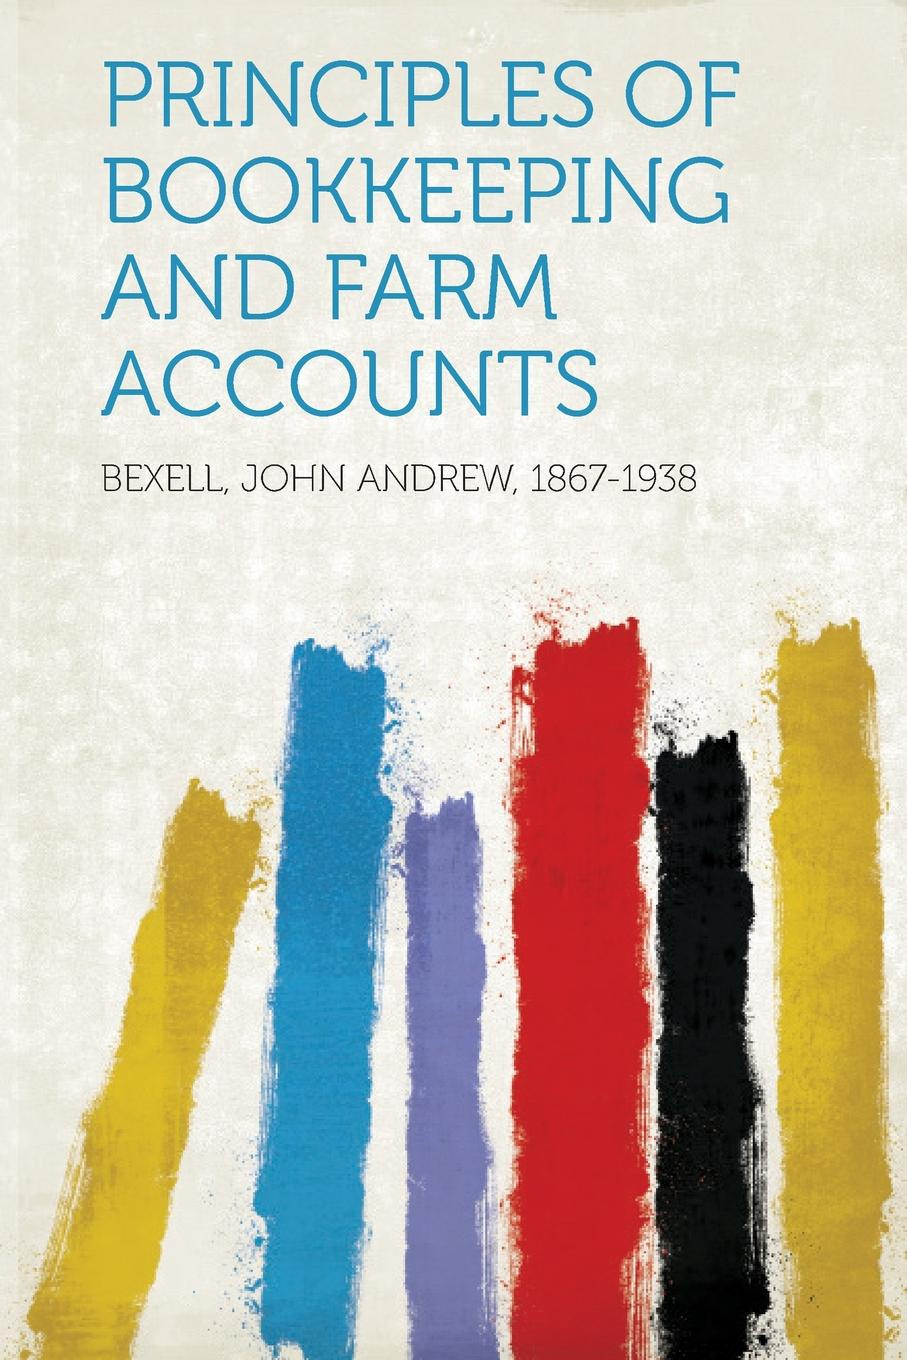 Bexell John Andrew 1867-1938 Principles of Bookkeeping and Farm Accounts